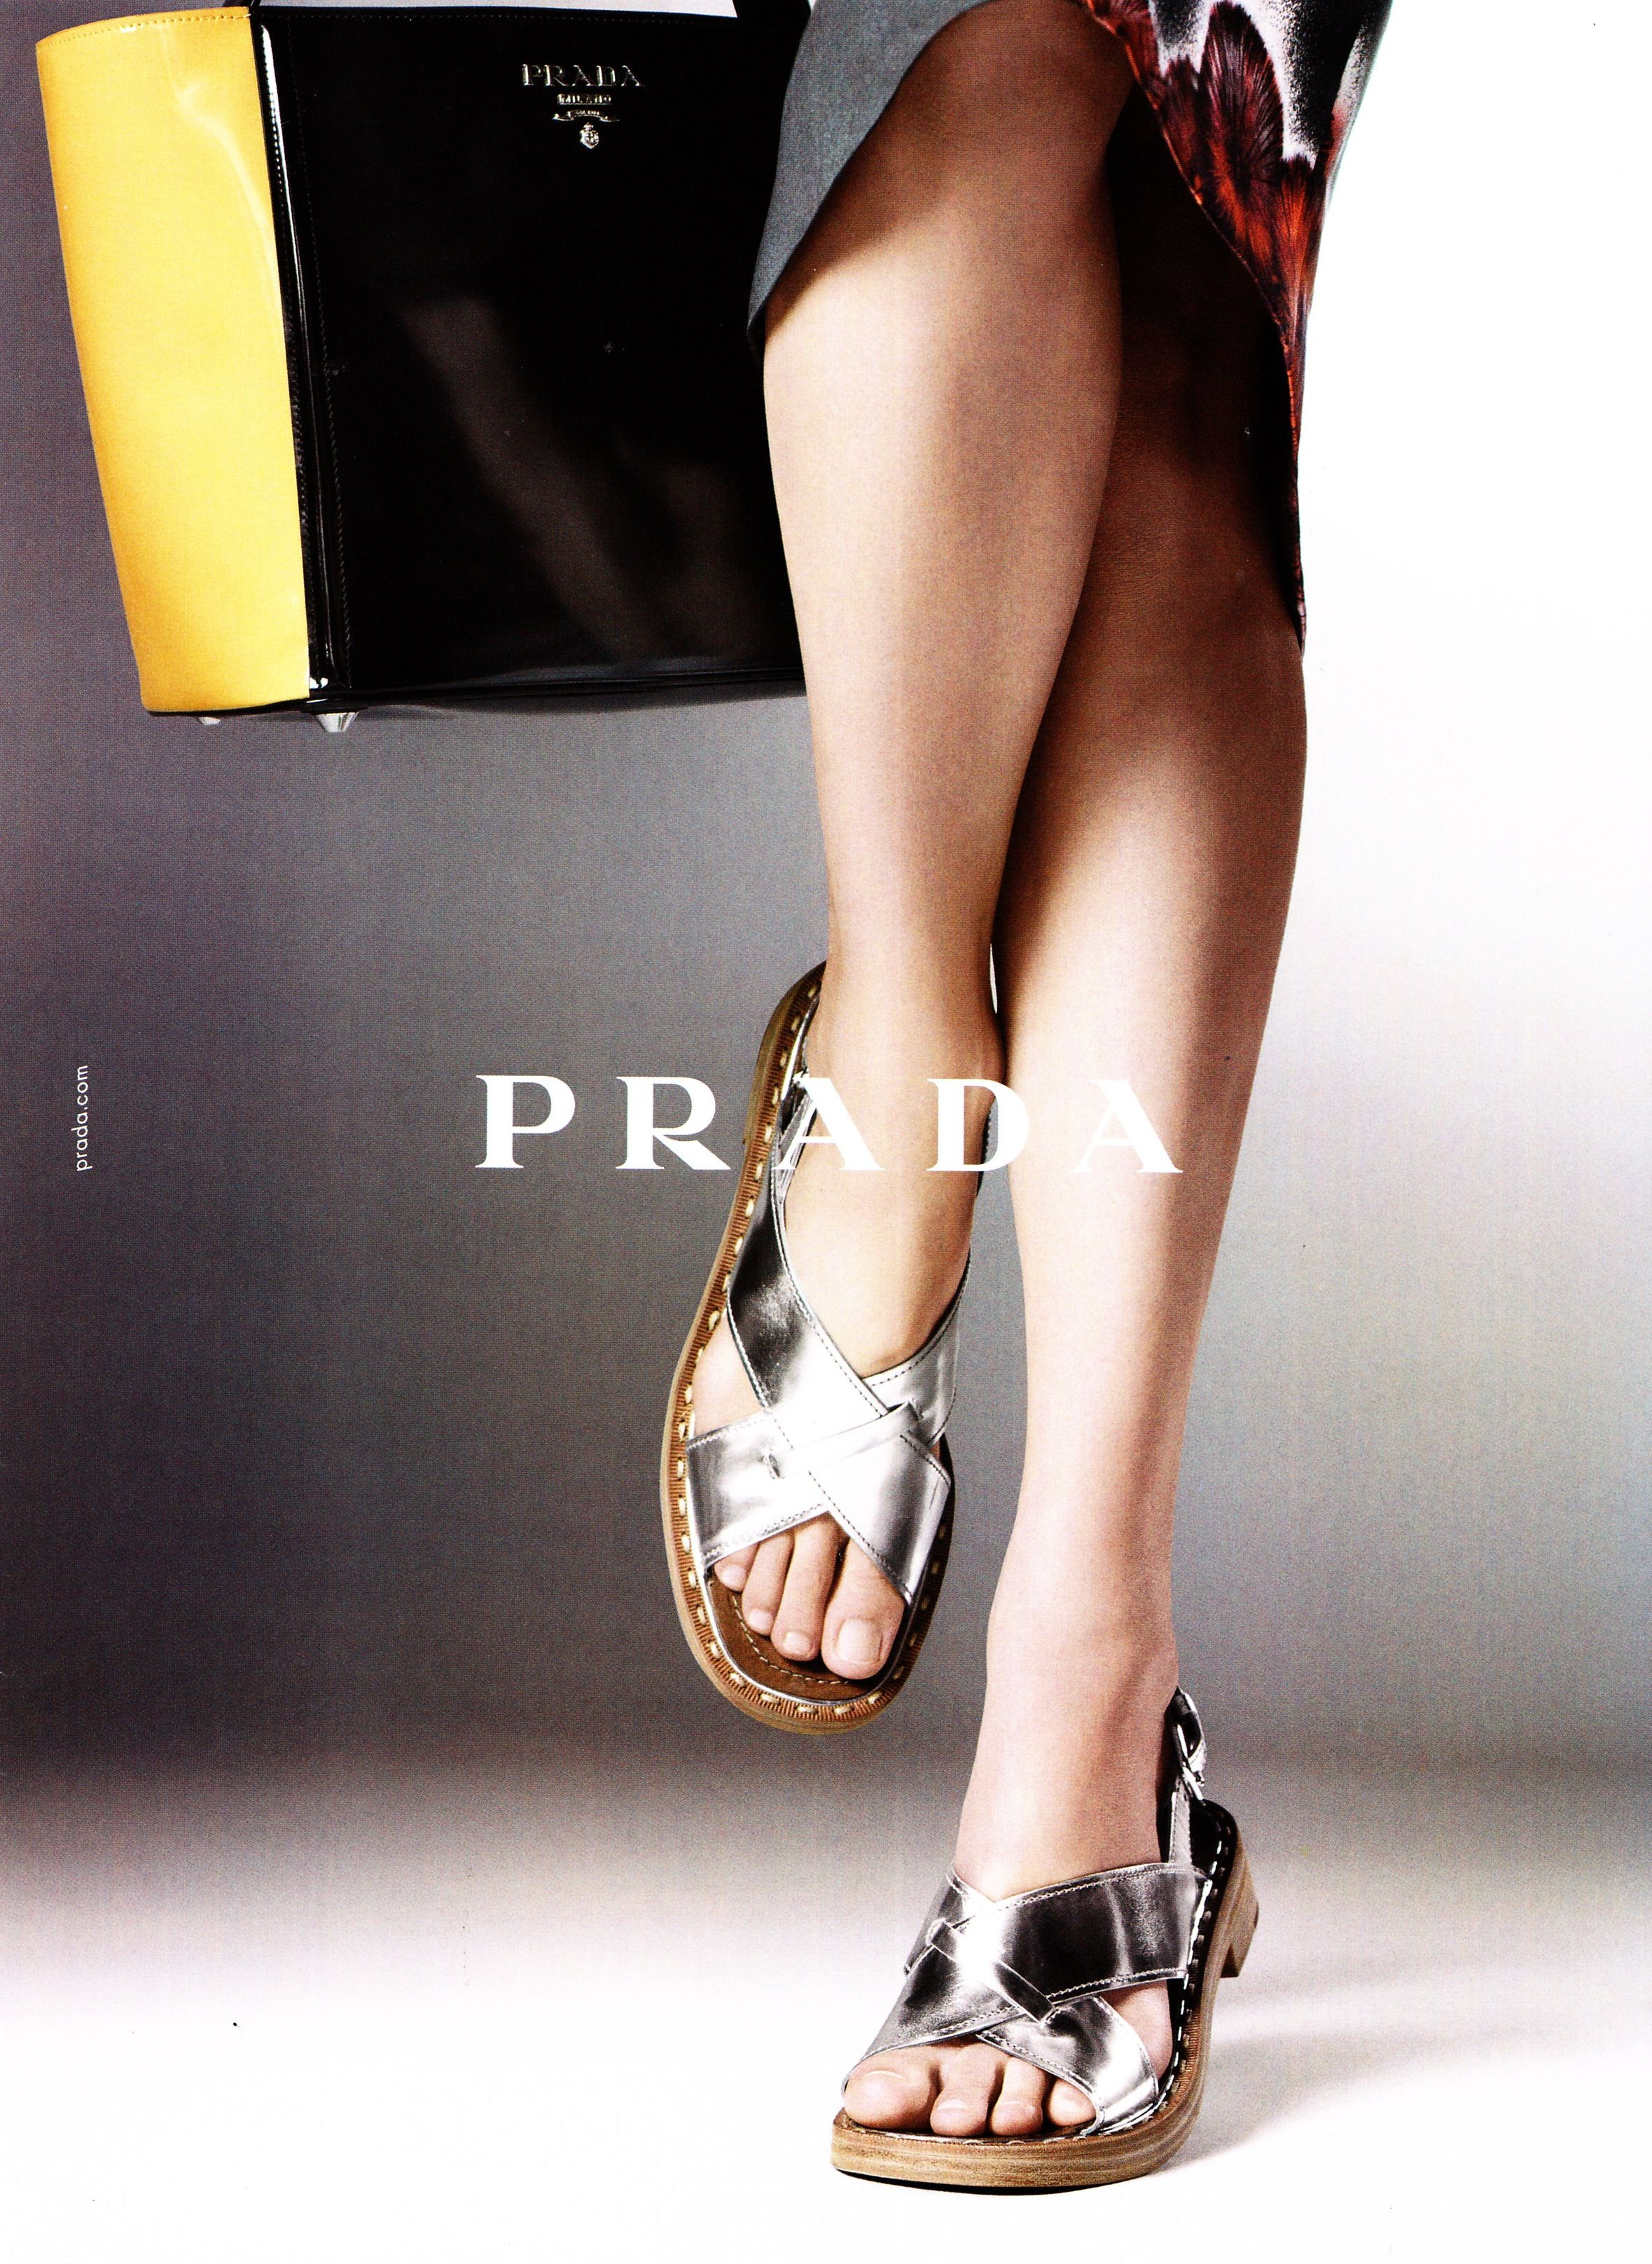 87e033994687 Prada advertisement (scan from a magazine)